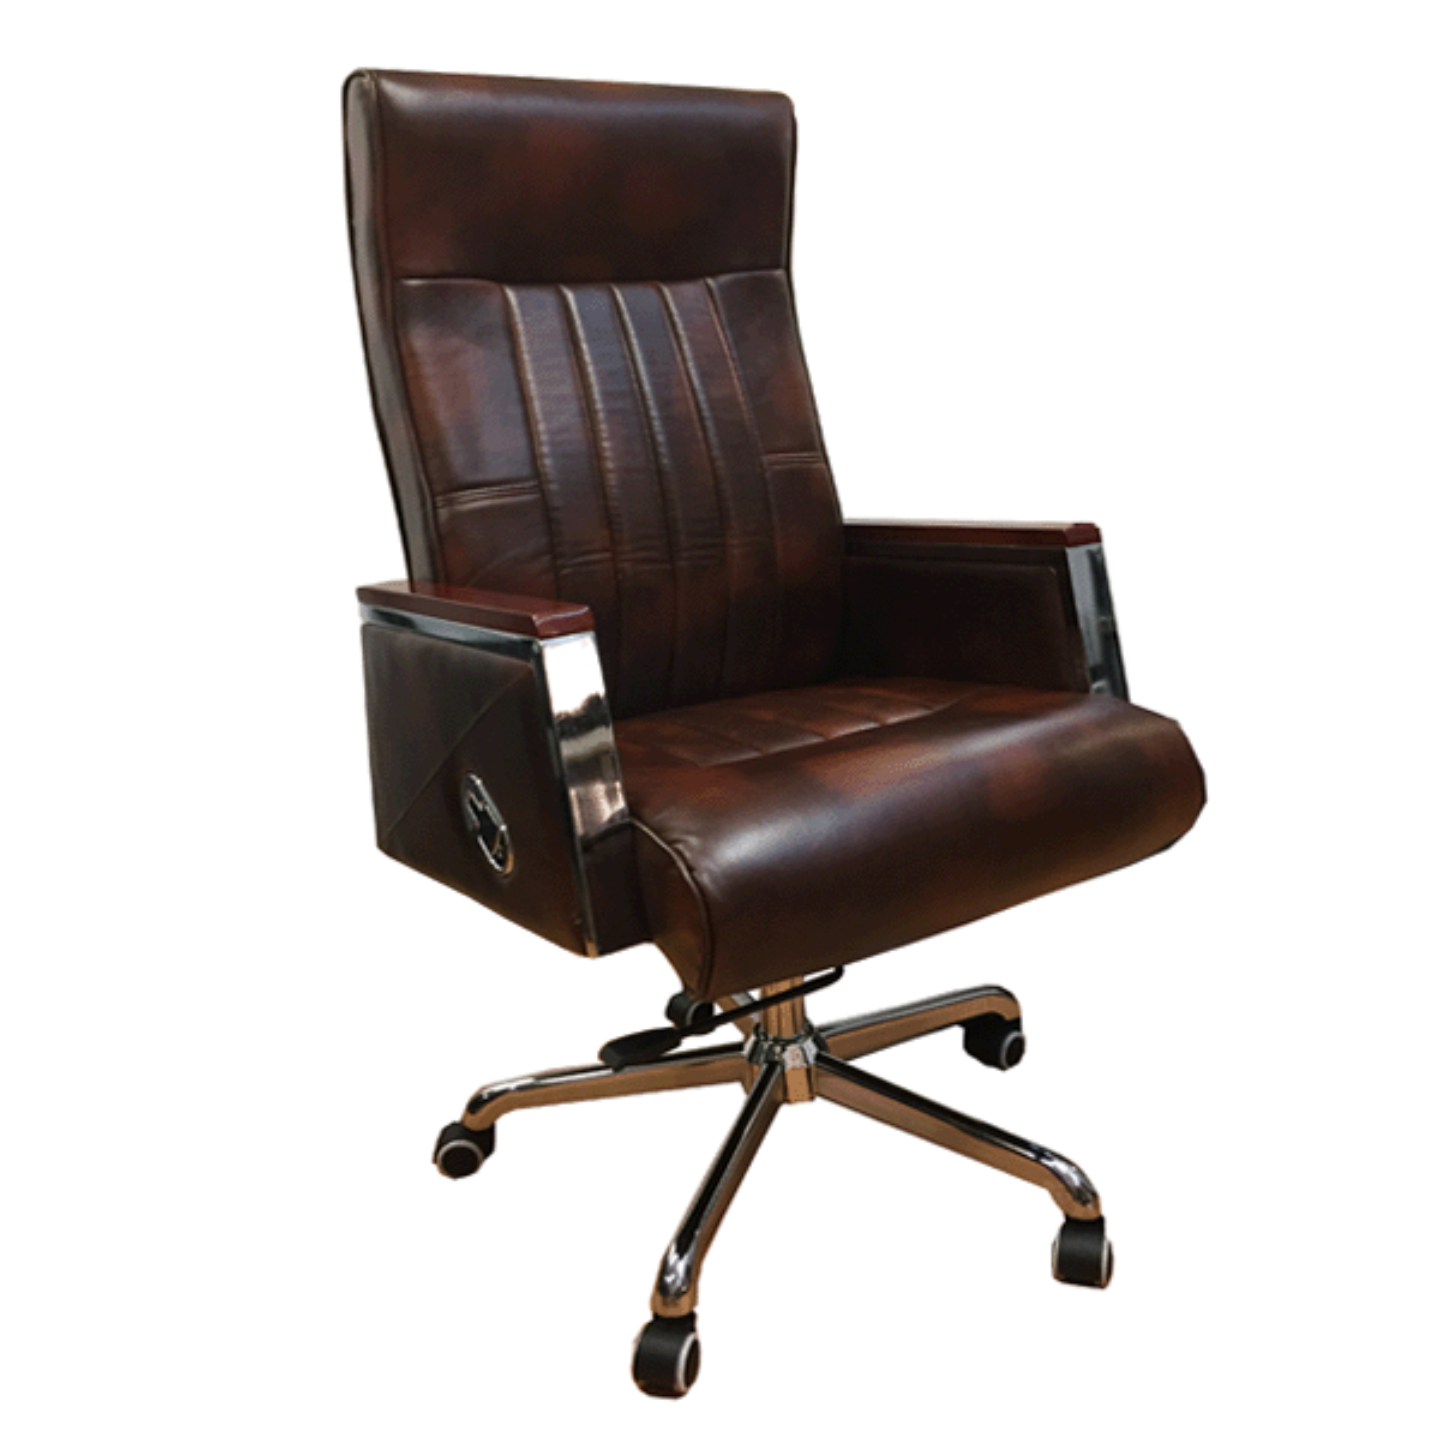 ROYAL Director Chair (PU Leather Brown)